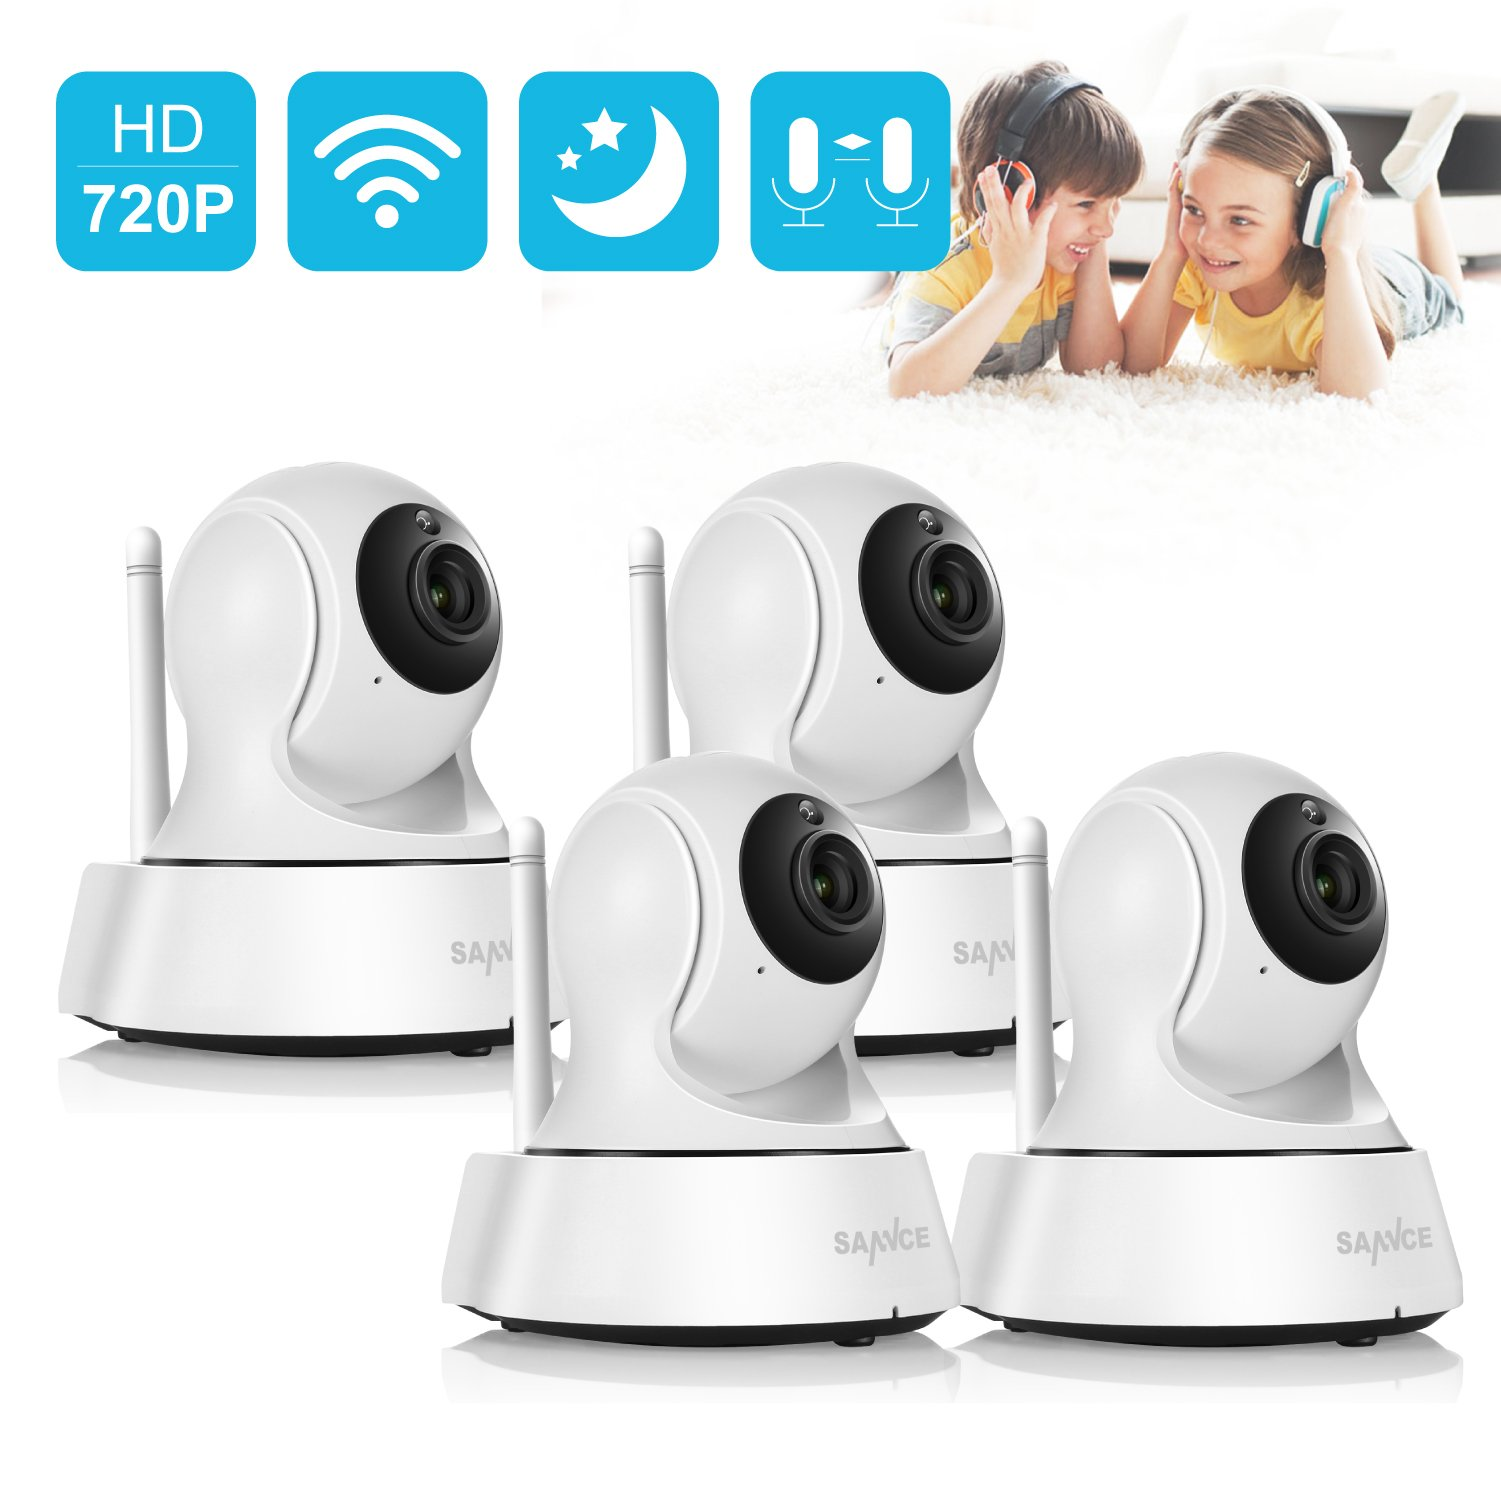 SANNCE HD Pan/Tilt Wireless WiFi IP Camera, 720P Security Camera with Two Way Audio, Night Vision/Memory Card Slot/Plug/Play for Baby/Elder/Pet/Nanny/Garage/Office Monitor(4 Pack, Black)